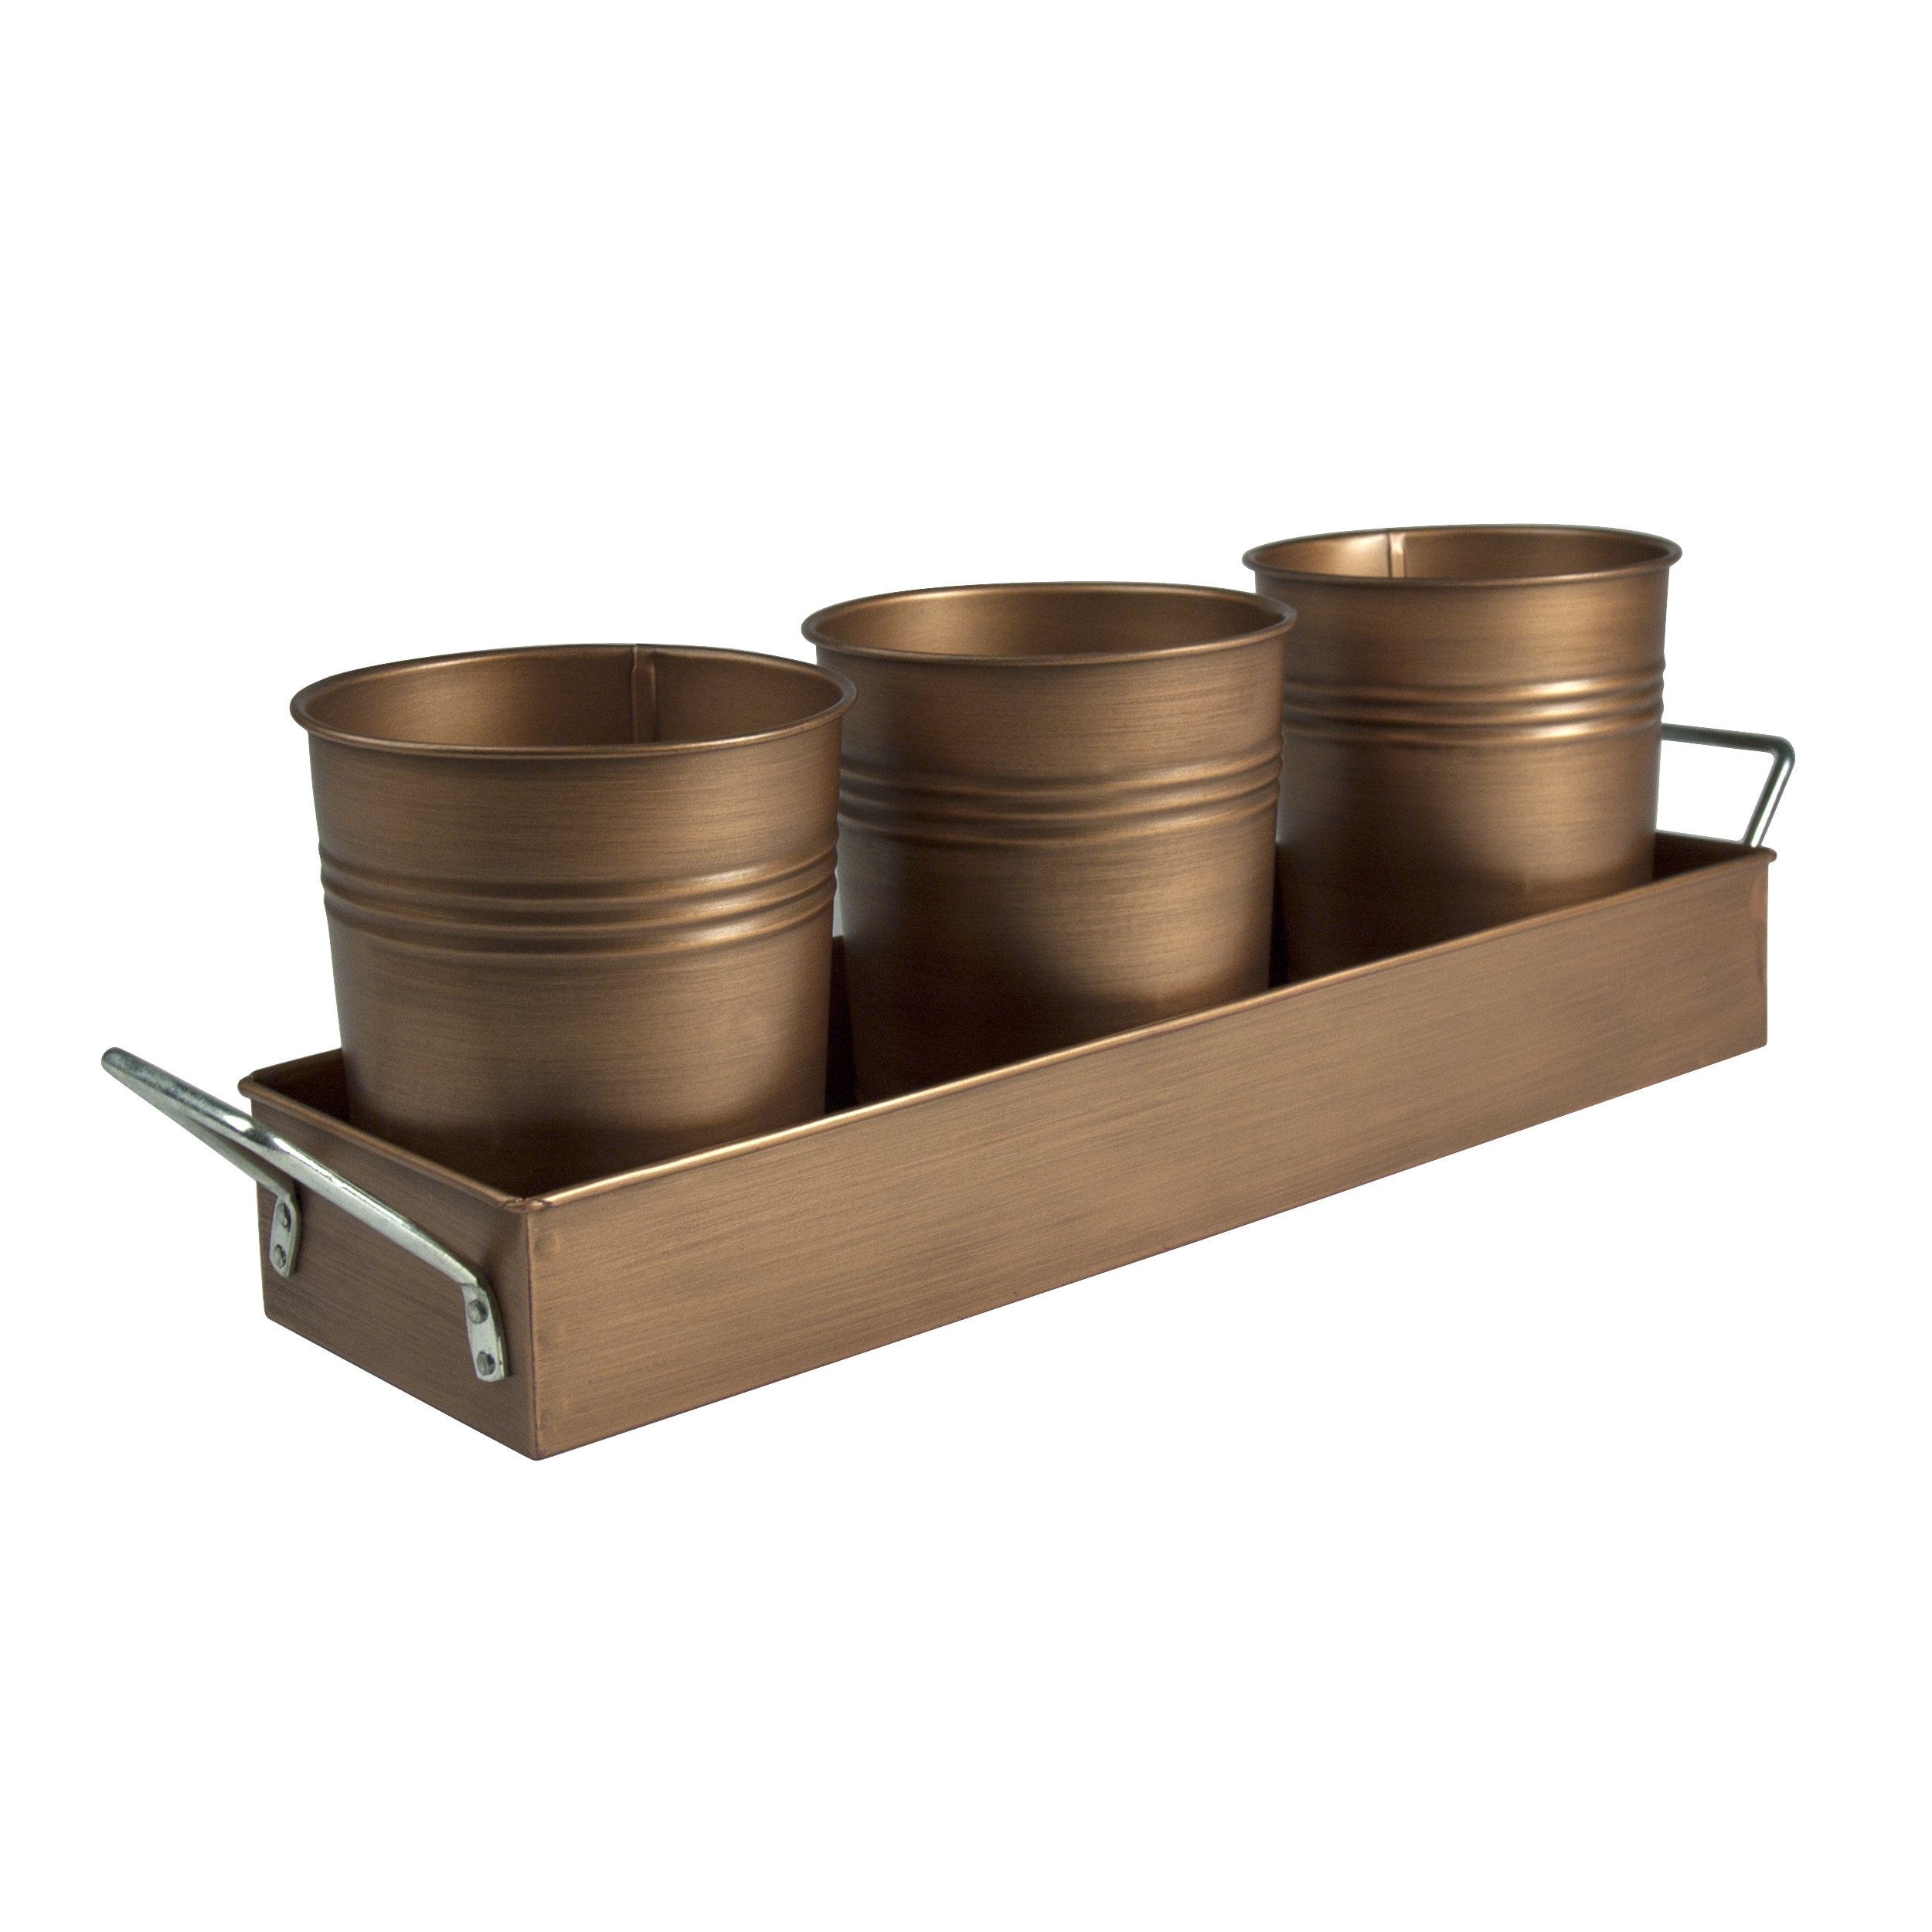 Artland 10391 Antique Copper Caddy, Bronze by Artland